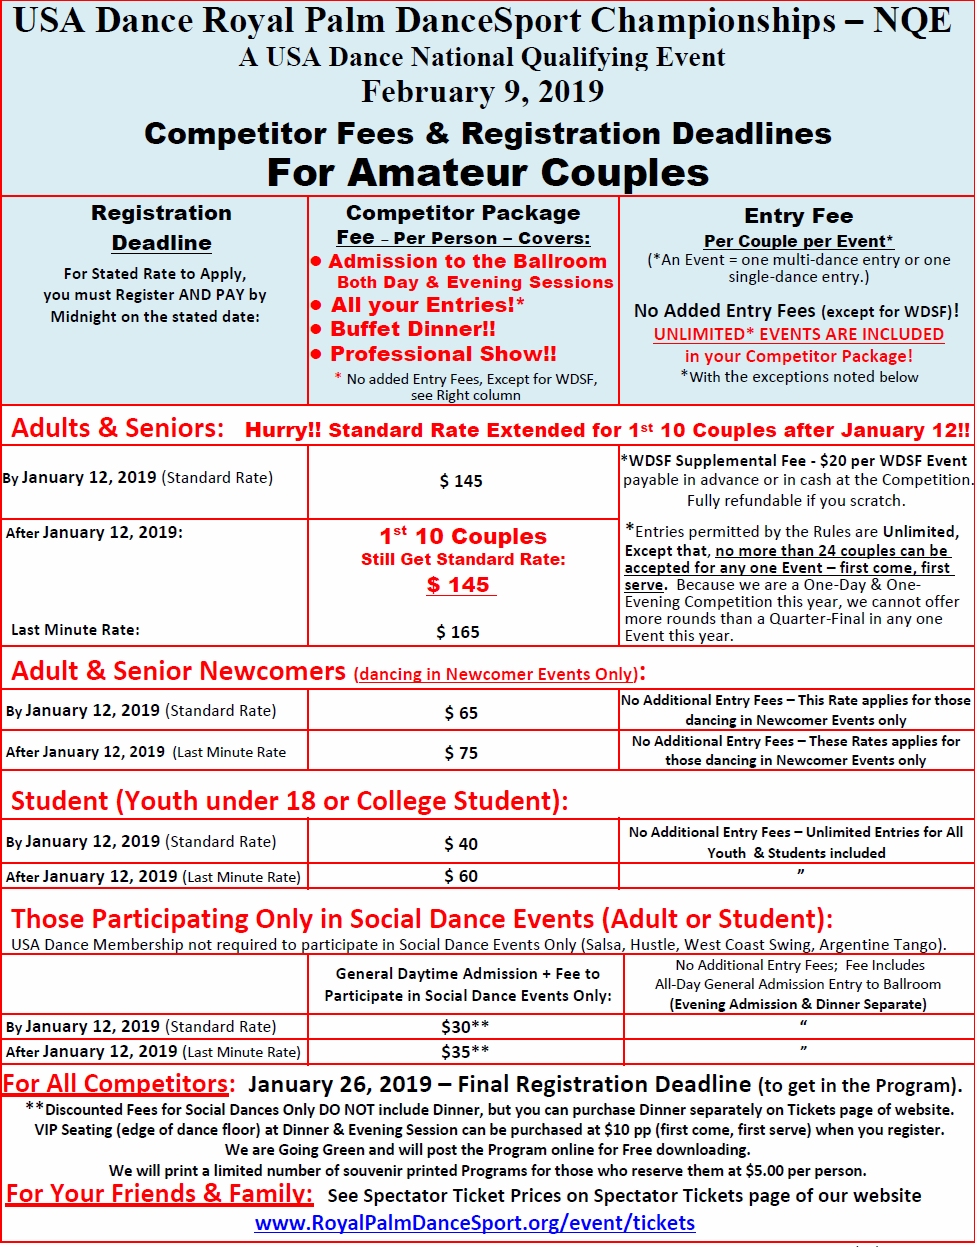 Updated Fees & Deadlines Chart - First 10 Adult or Senior Amateur Couples after January 12 still get Standard Rate!